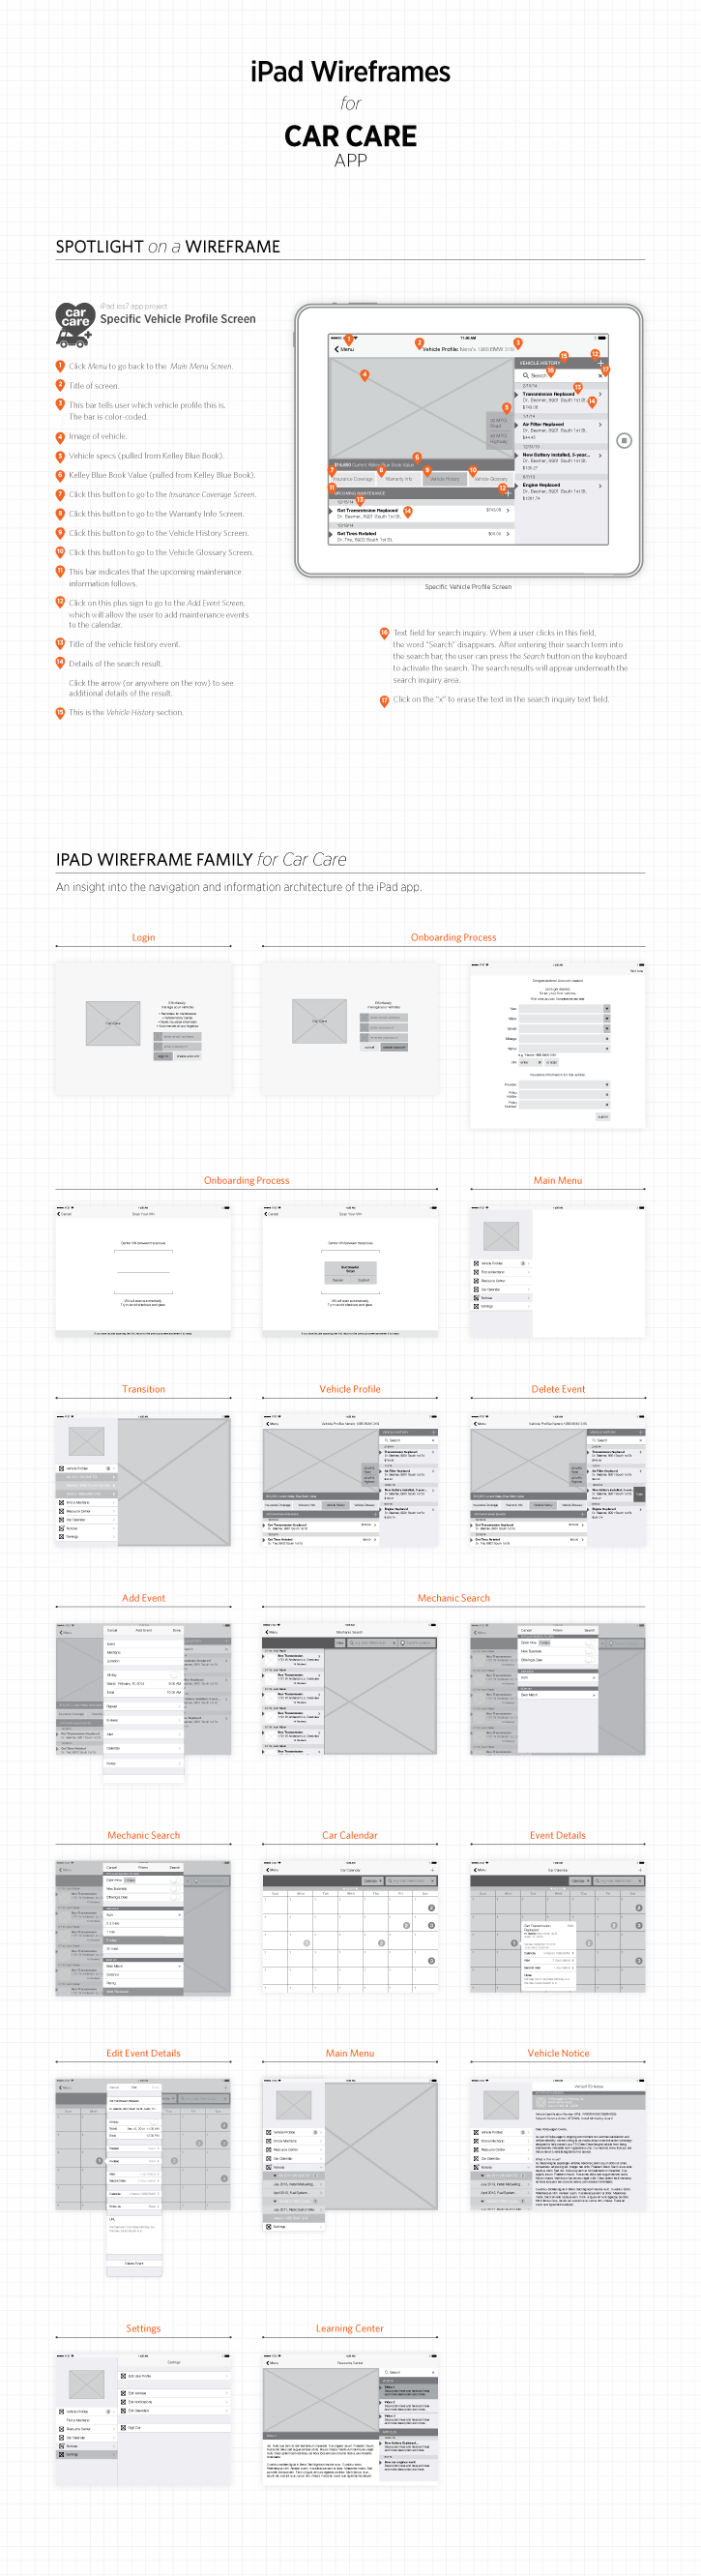 ipad wireframes for car care app includes both the spotlight on a wireframe and the ipad - Ipad App Wireframe